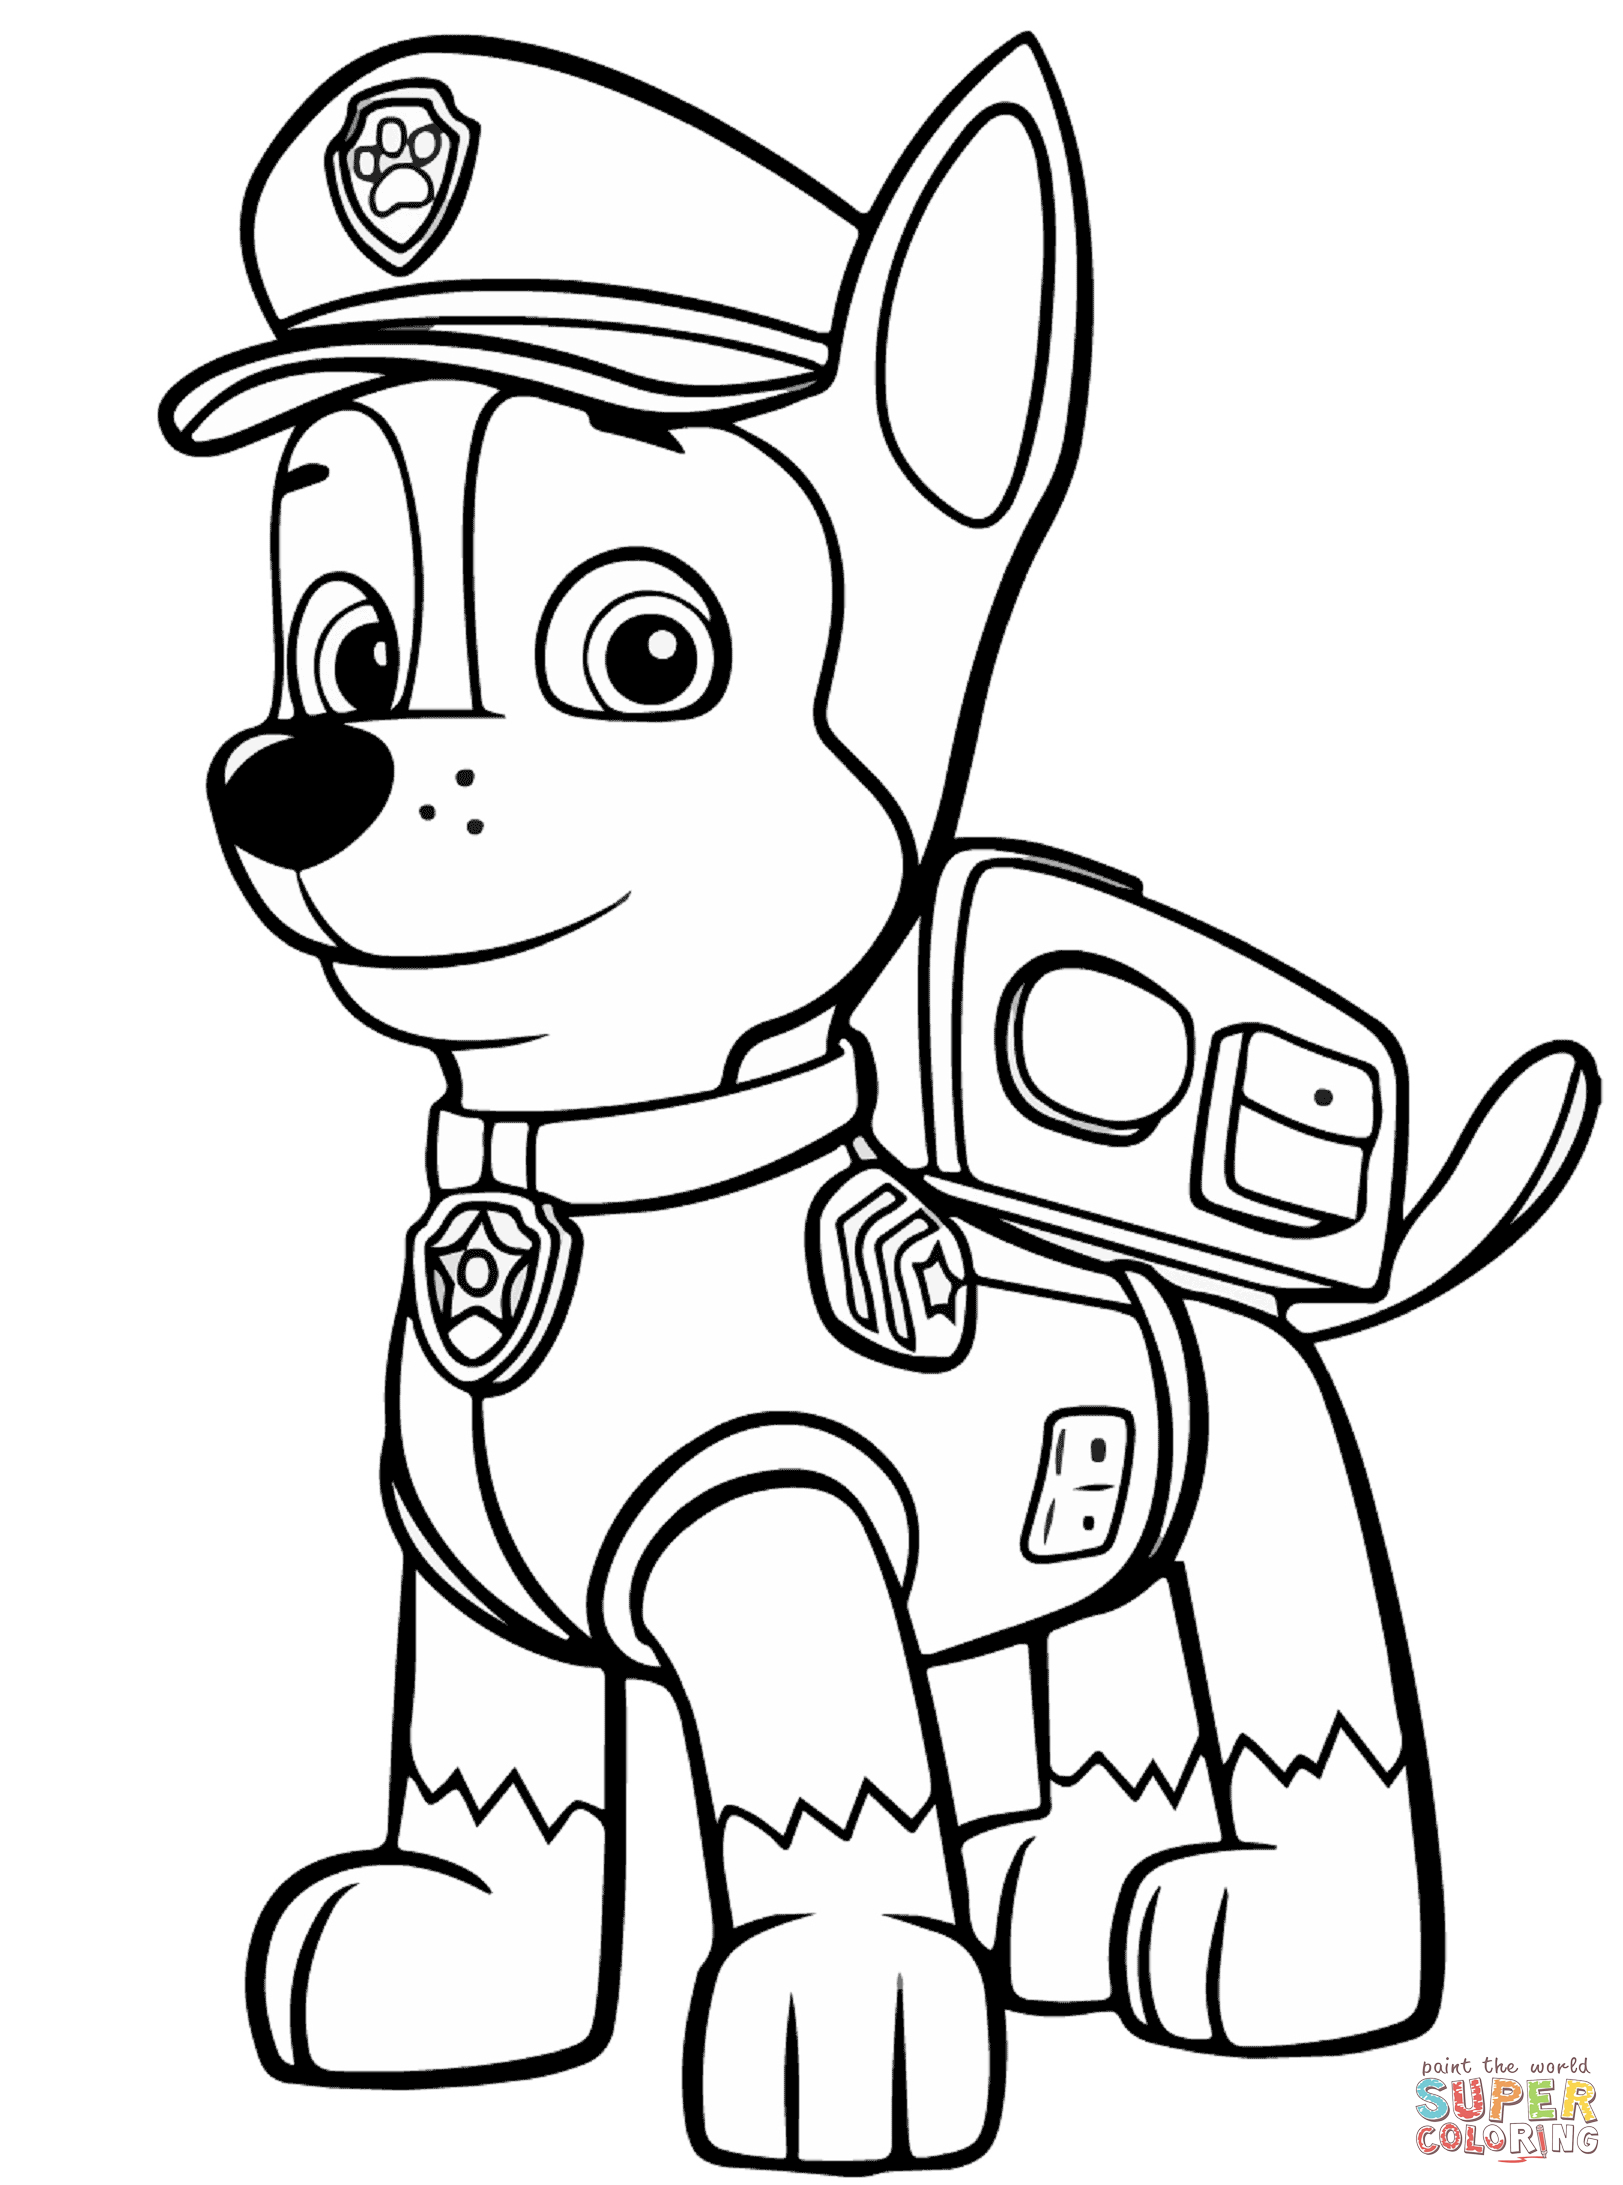 paw patrol chase silhouette at getdrawings  free for